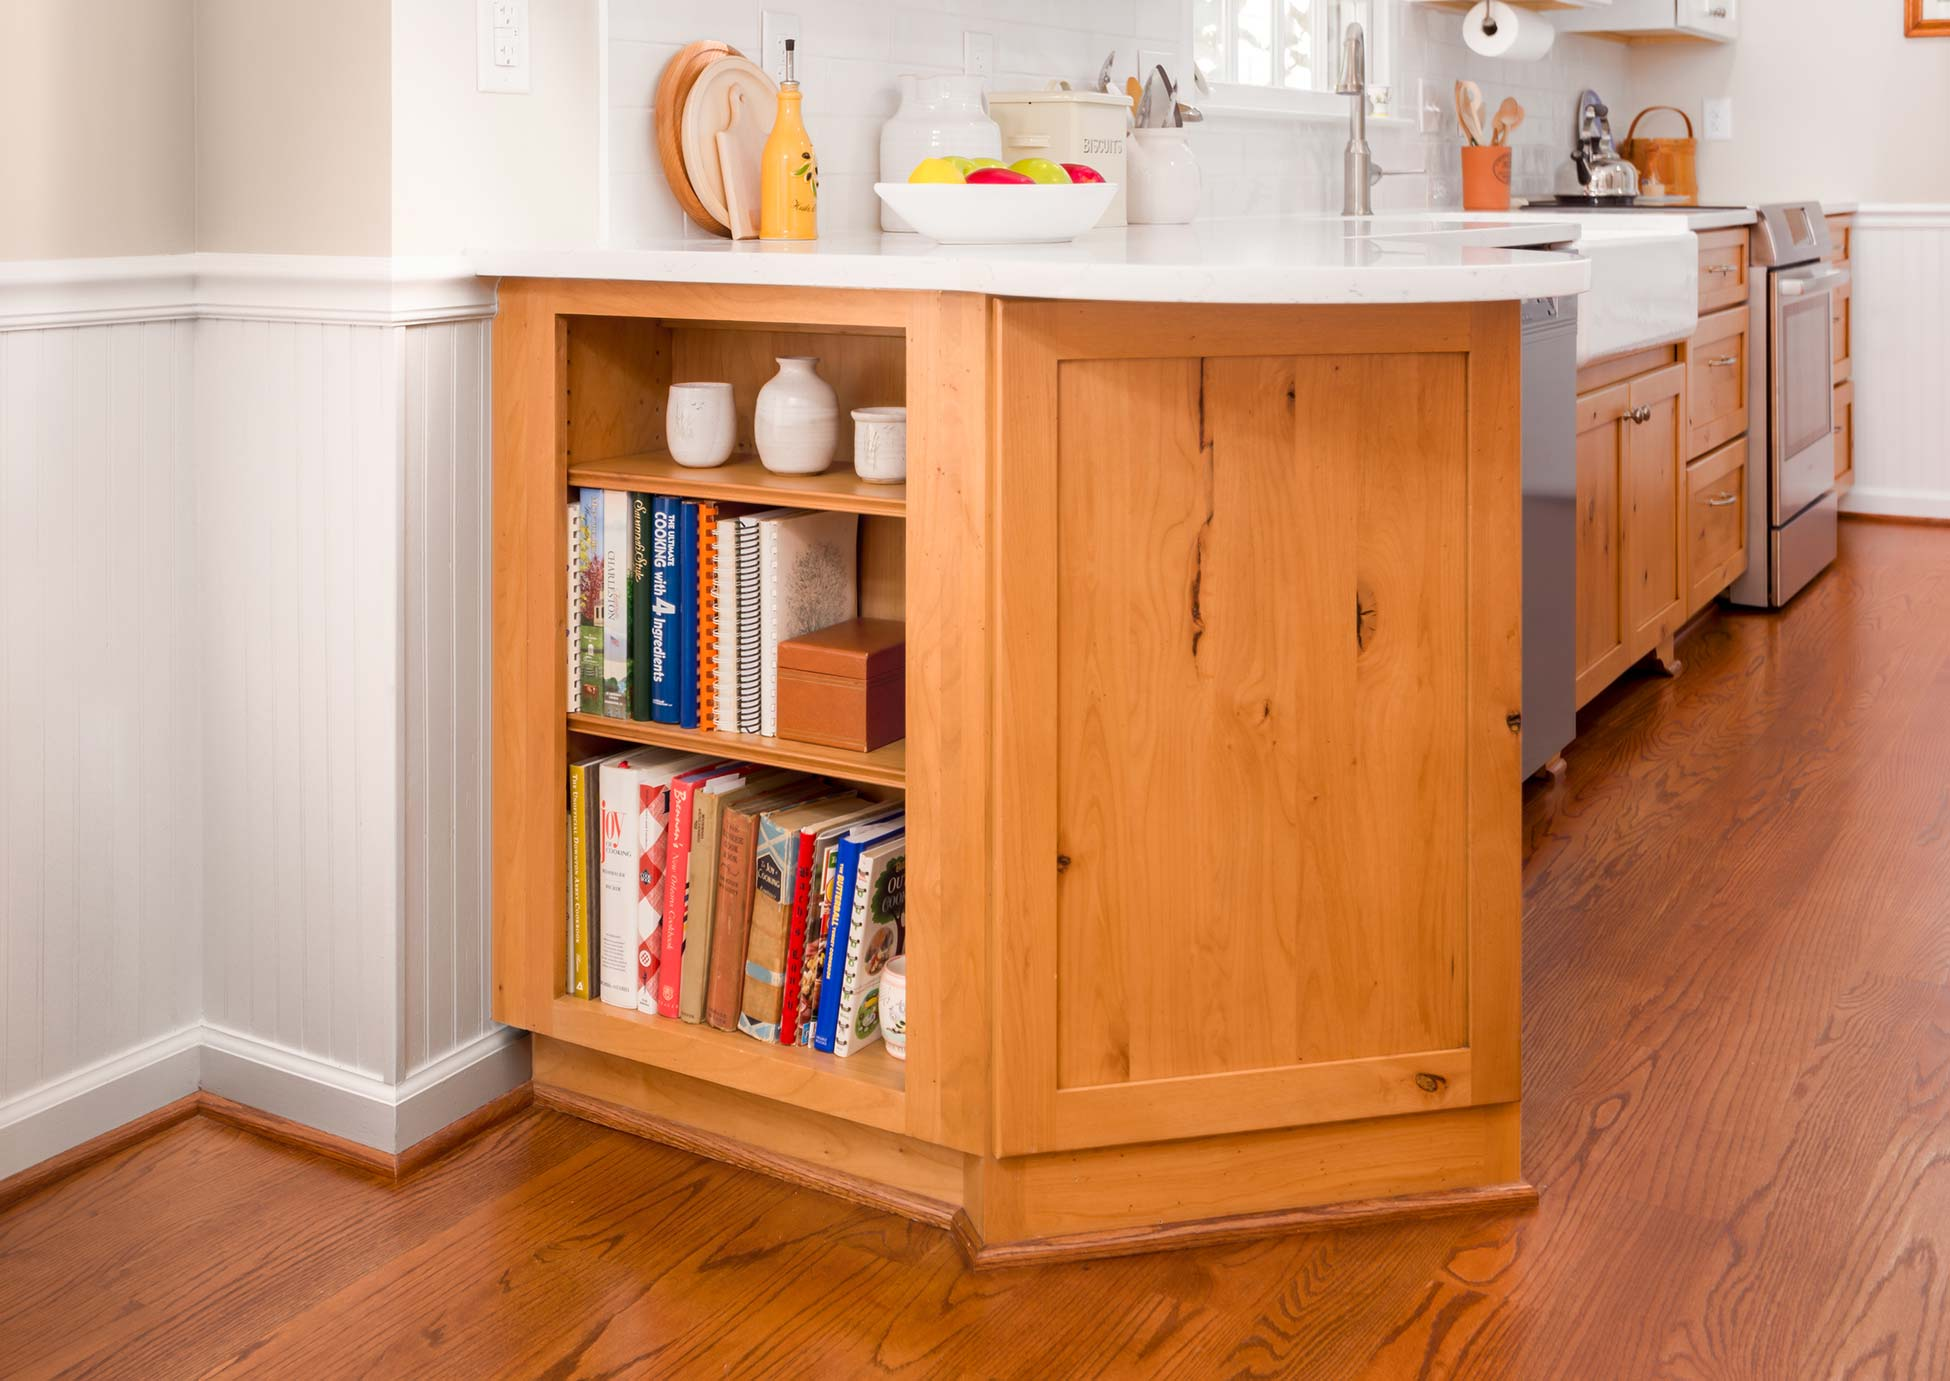 remodeling construction company Cary NC, Cederberg Kitchens + Renovations